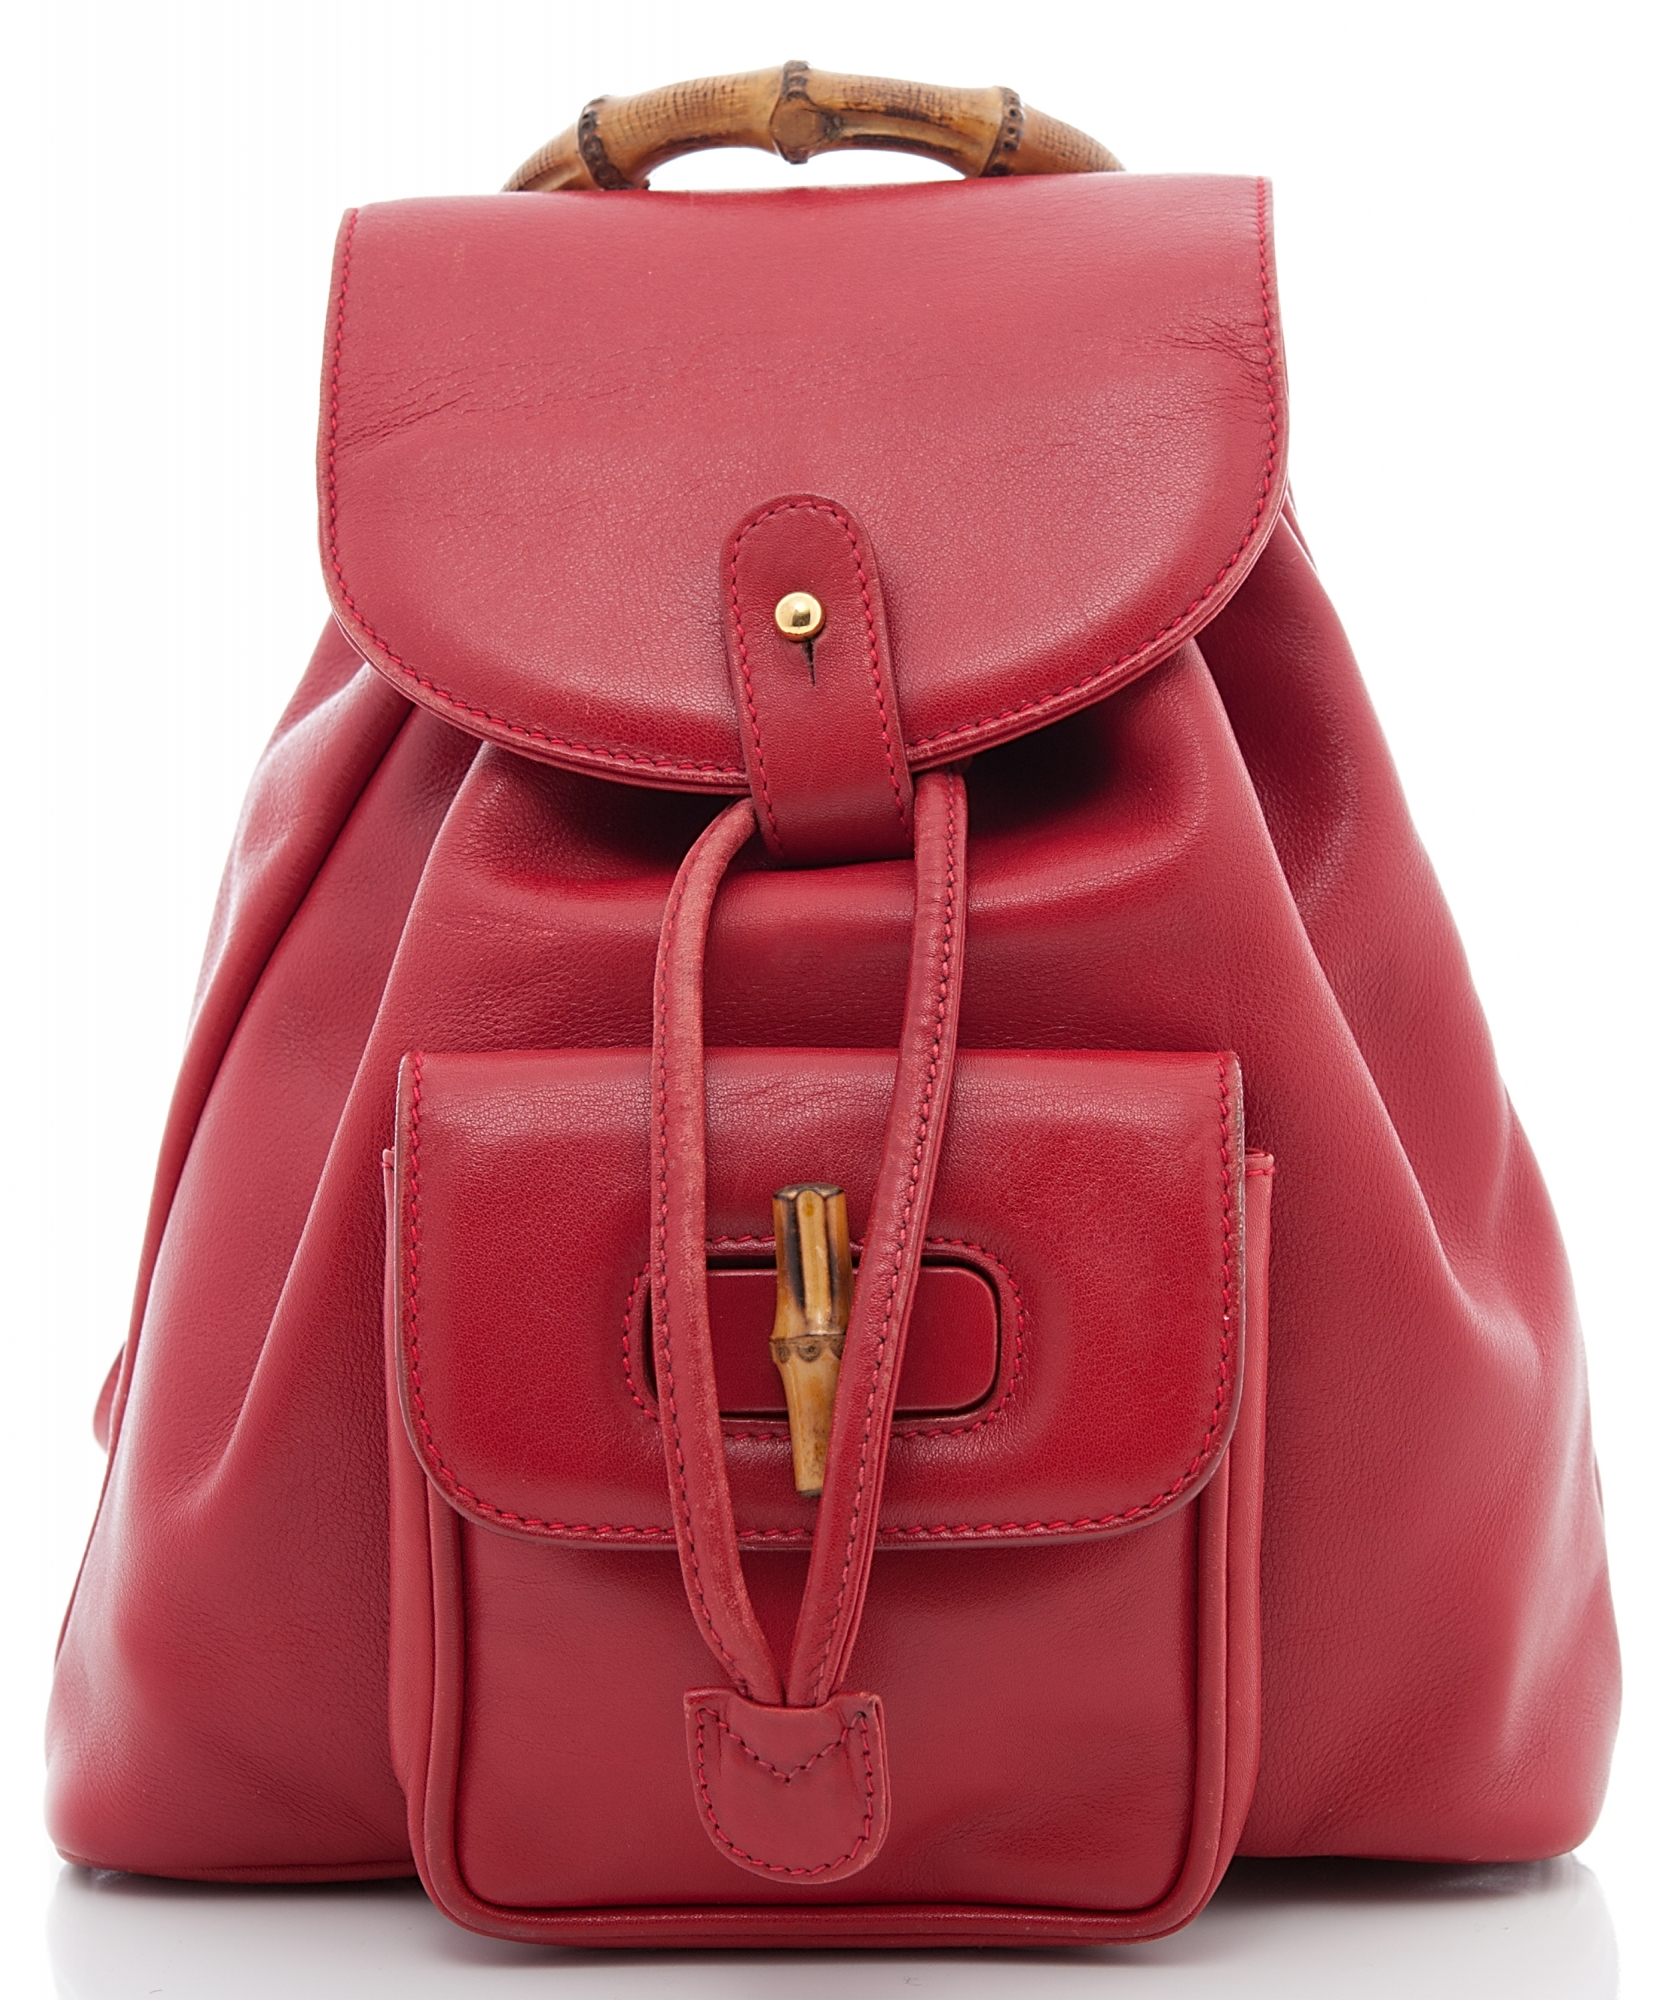 7d1090cc194775 Gucci Red Leather Backpack- Fenix Toulouse Handball